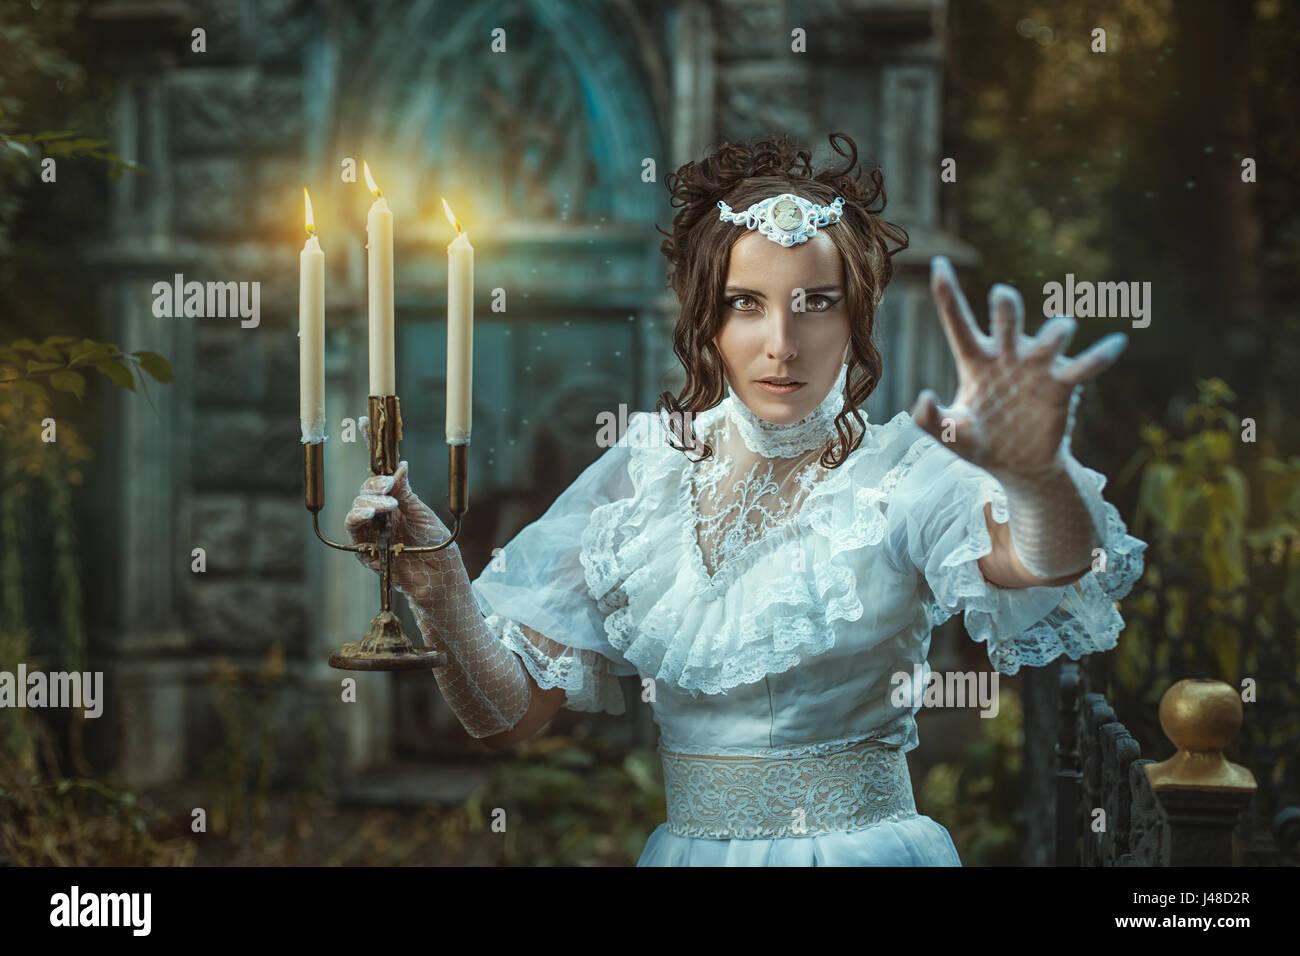 The evening darkens. Girl with a candelabra in hand in which candles are burning. Girl scares us and shouts inducing - Stock Image